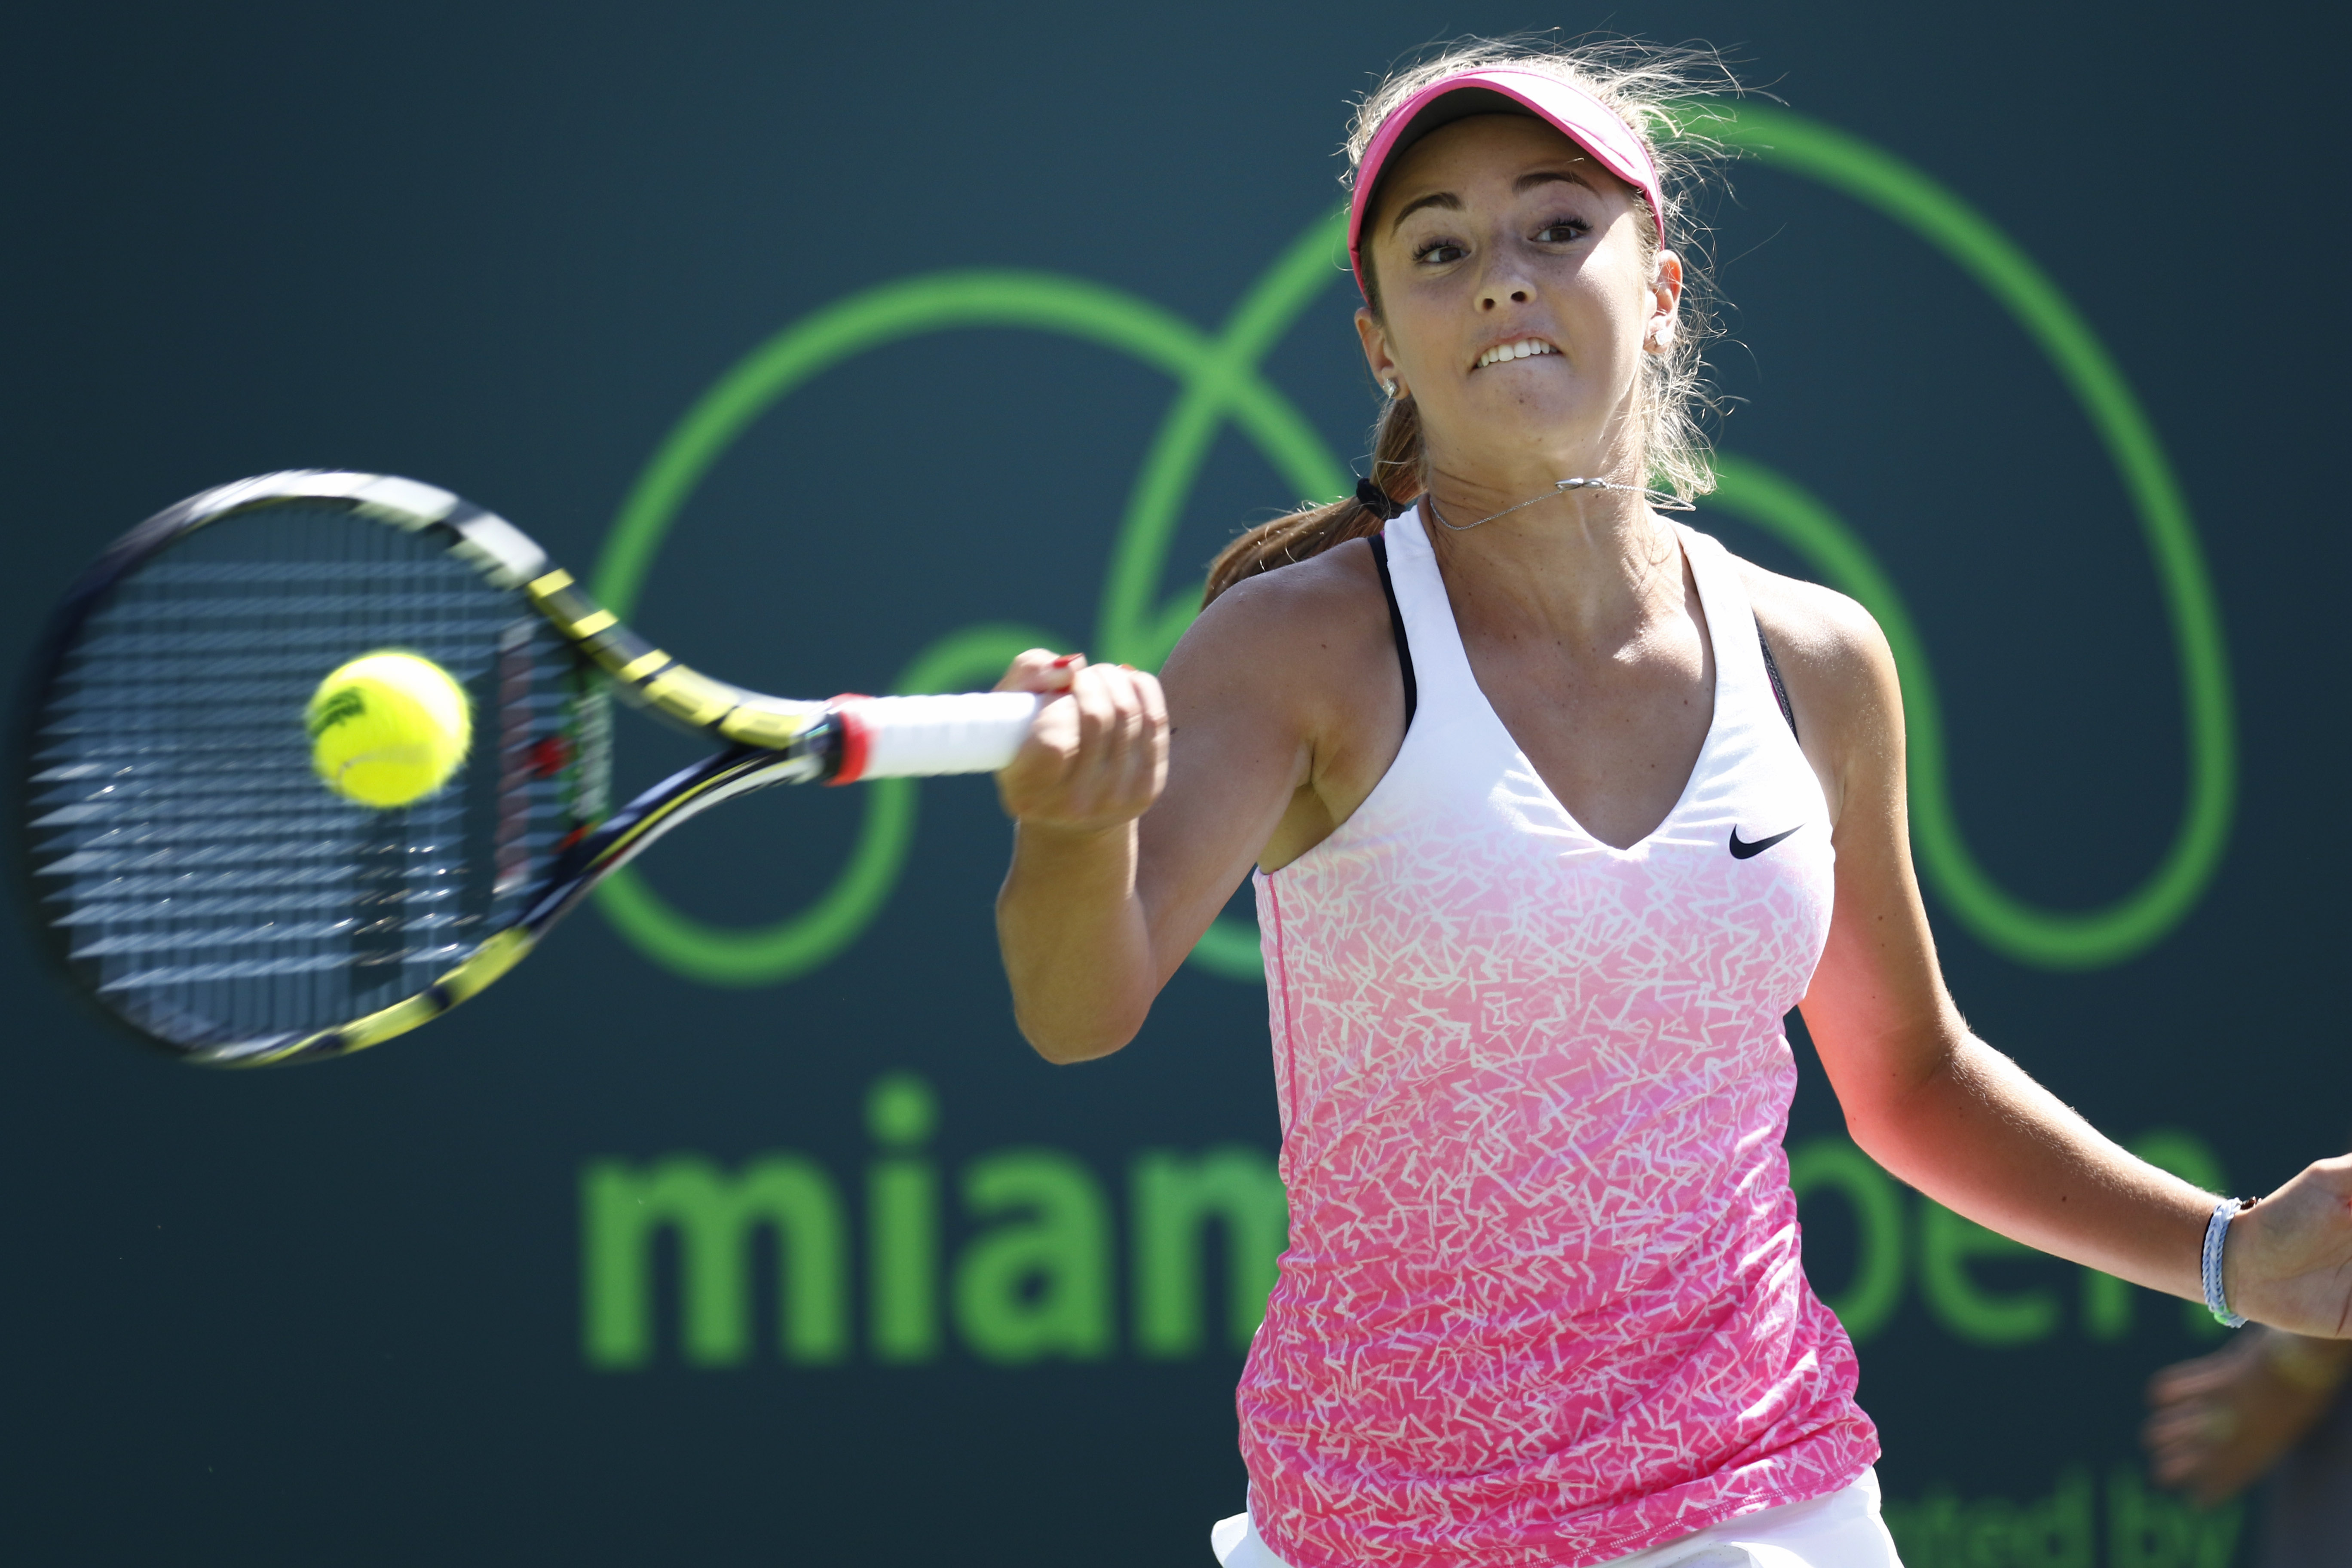 CiCi Bellis returns the ball to Serena Williams during their match at the Miami Open tennis tournament in Key Biscayne, Fla., Sunday, March 29, 2015. (AP Photo/J Pat Carter)